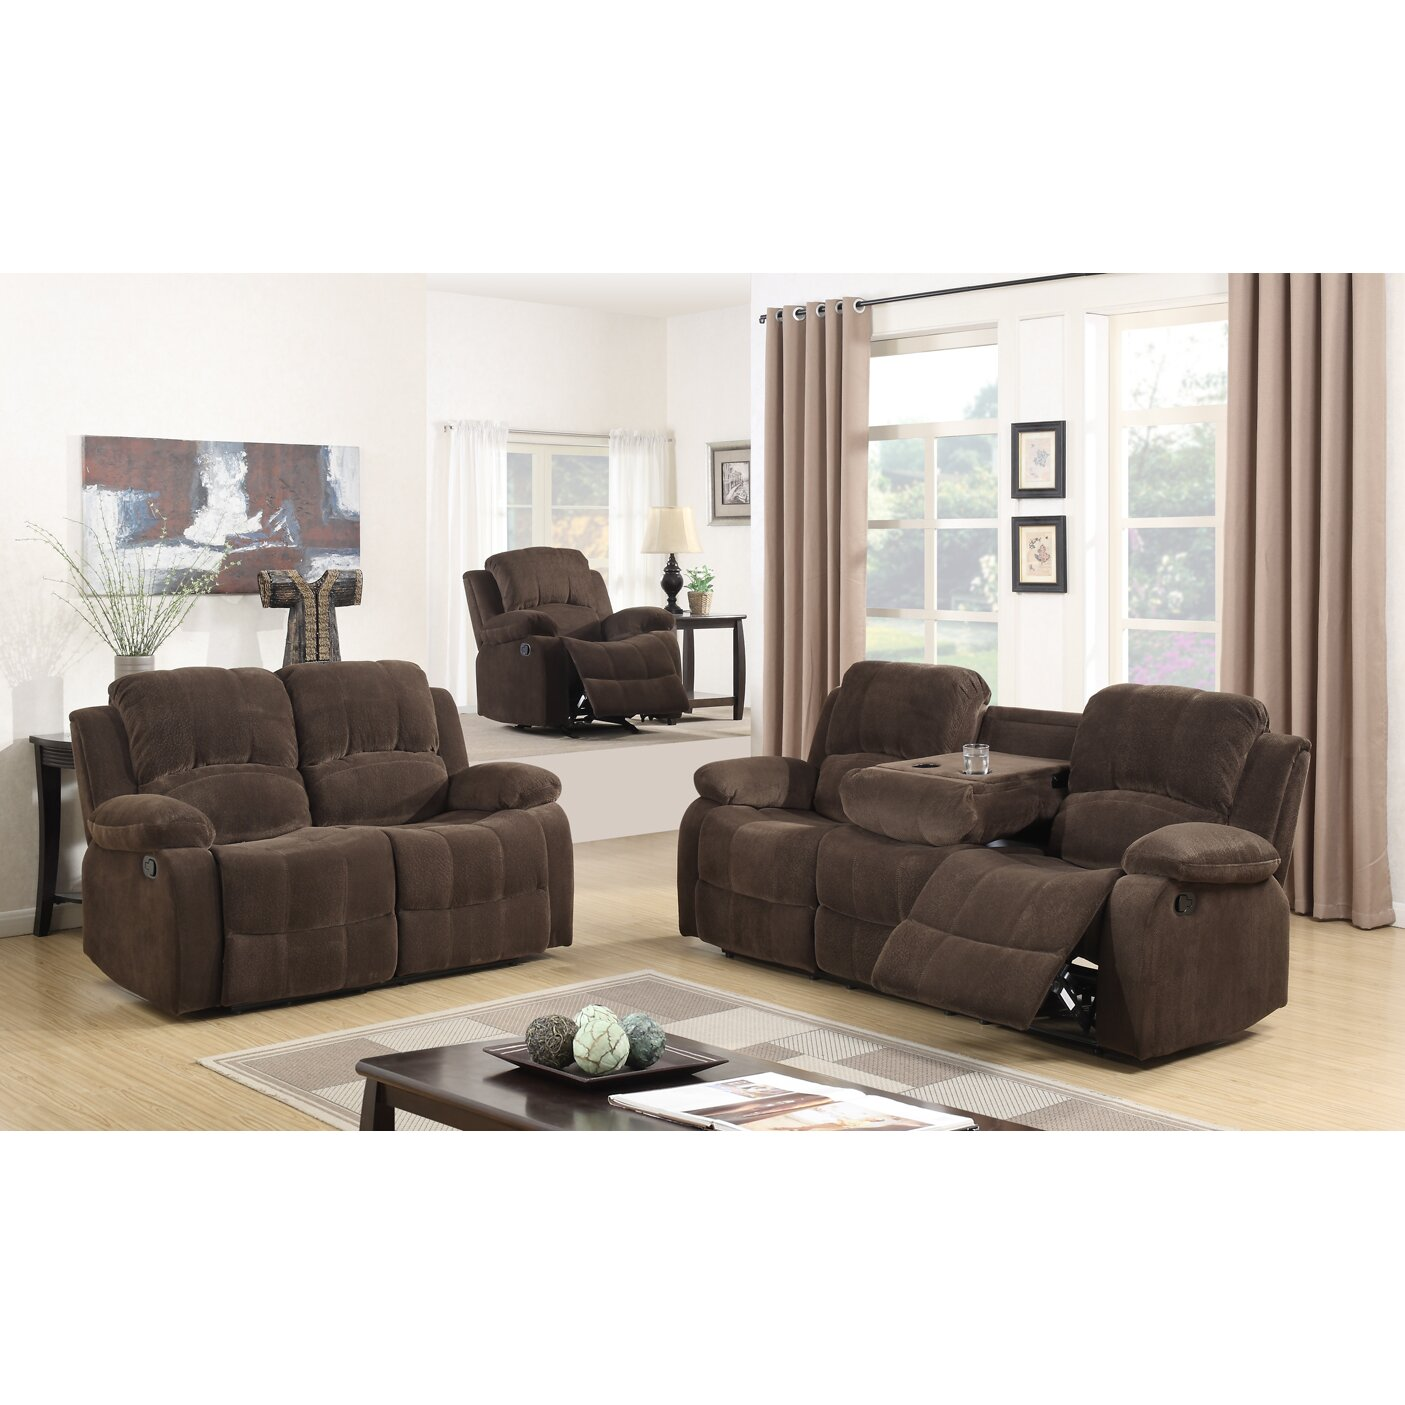 Best quality furniture fabric 3 piece recliner living room for Best living room furniture